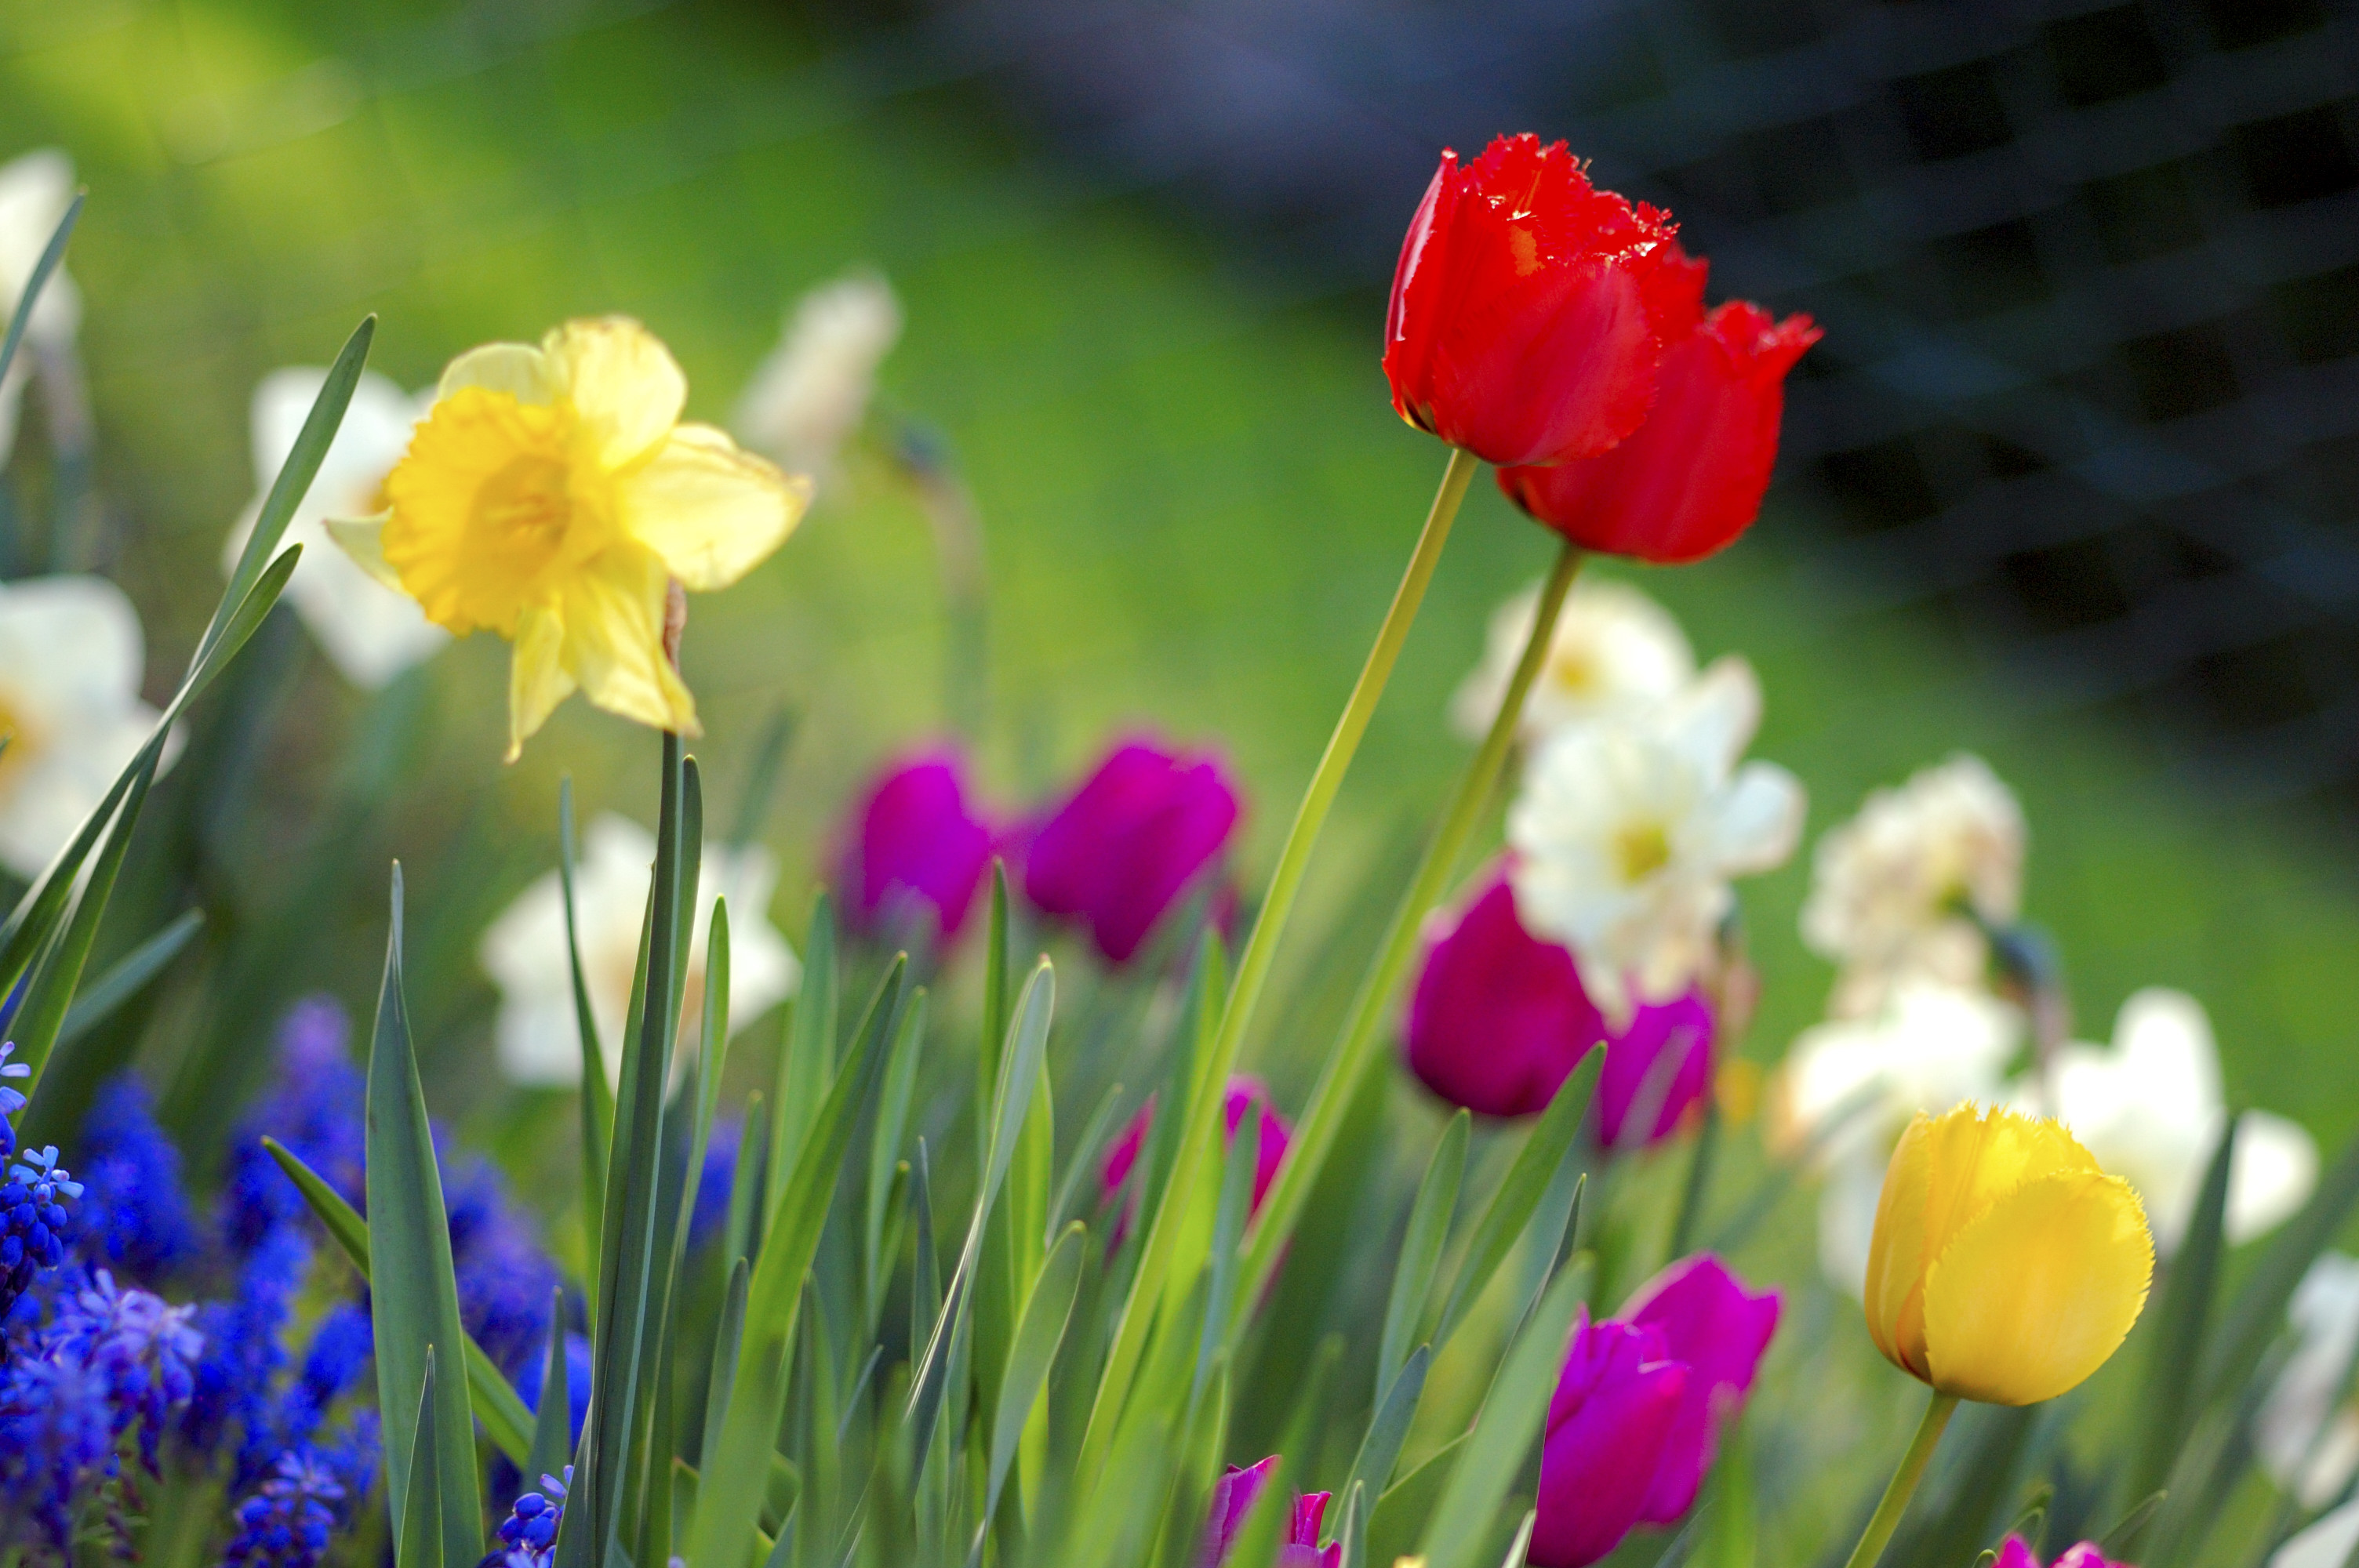 Spring Wallpapers for your desktopHope you like this HD Spring 3008x2000